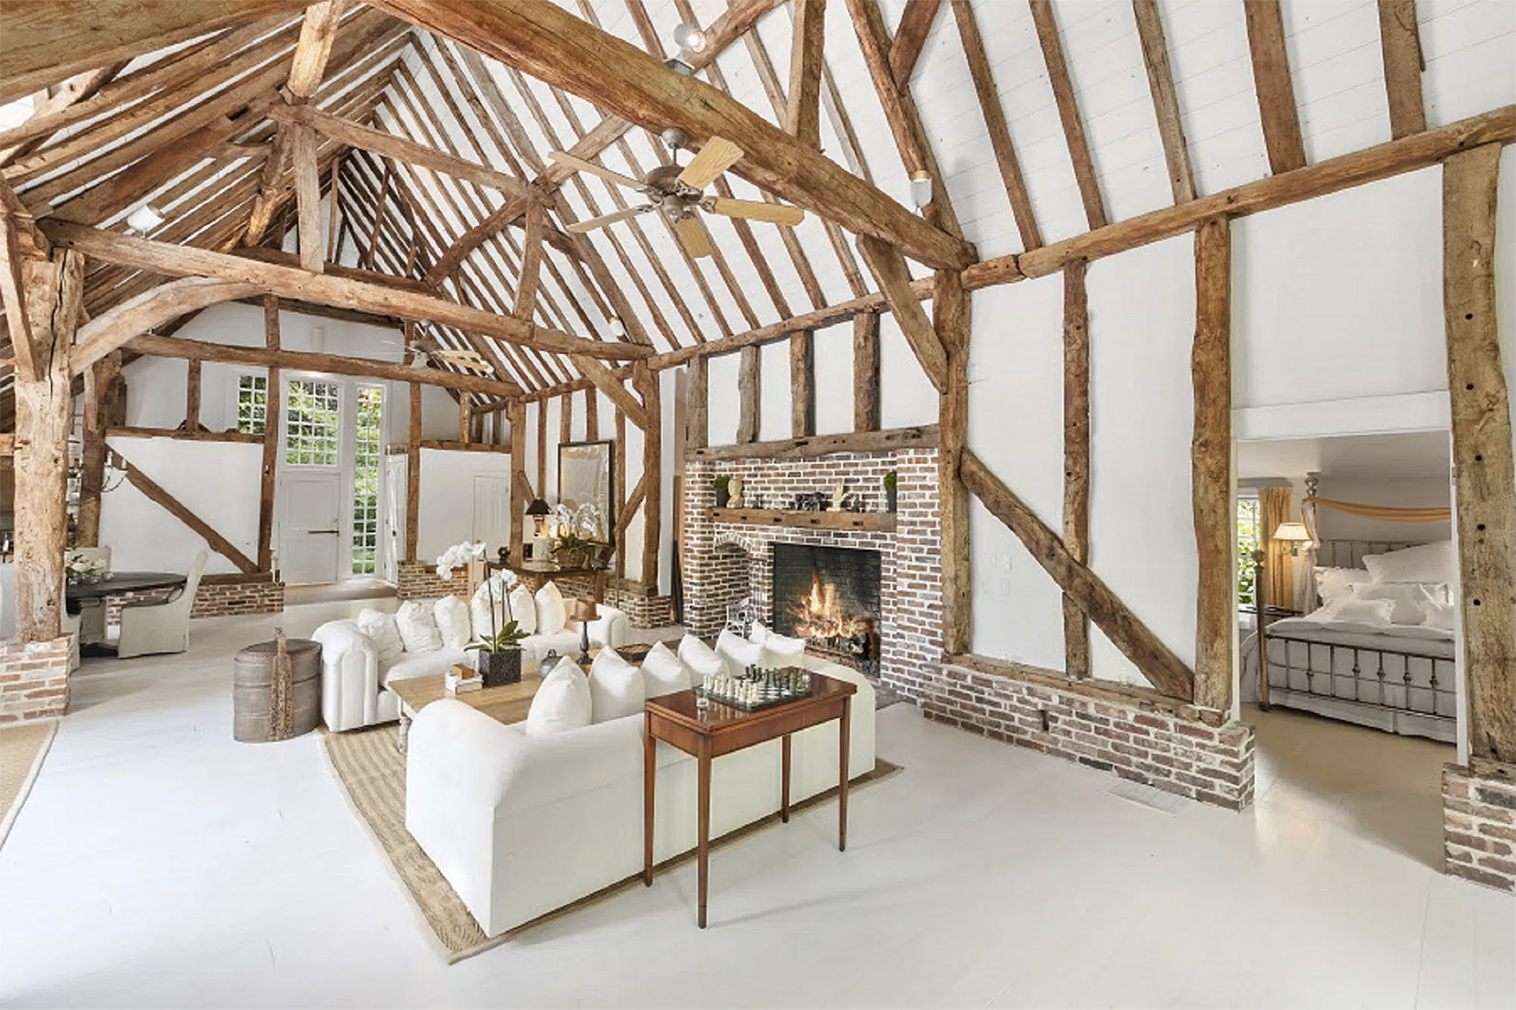 Barn Conversion Interior | Granite Building Warranties